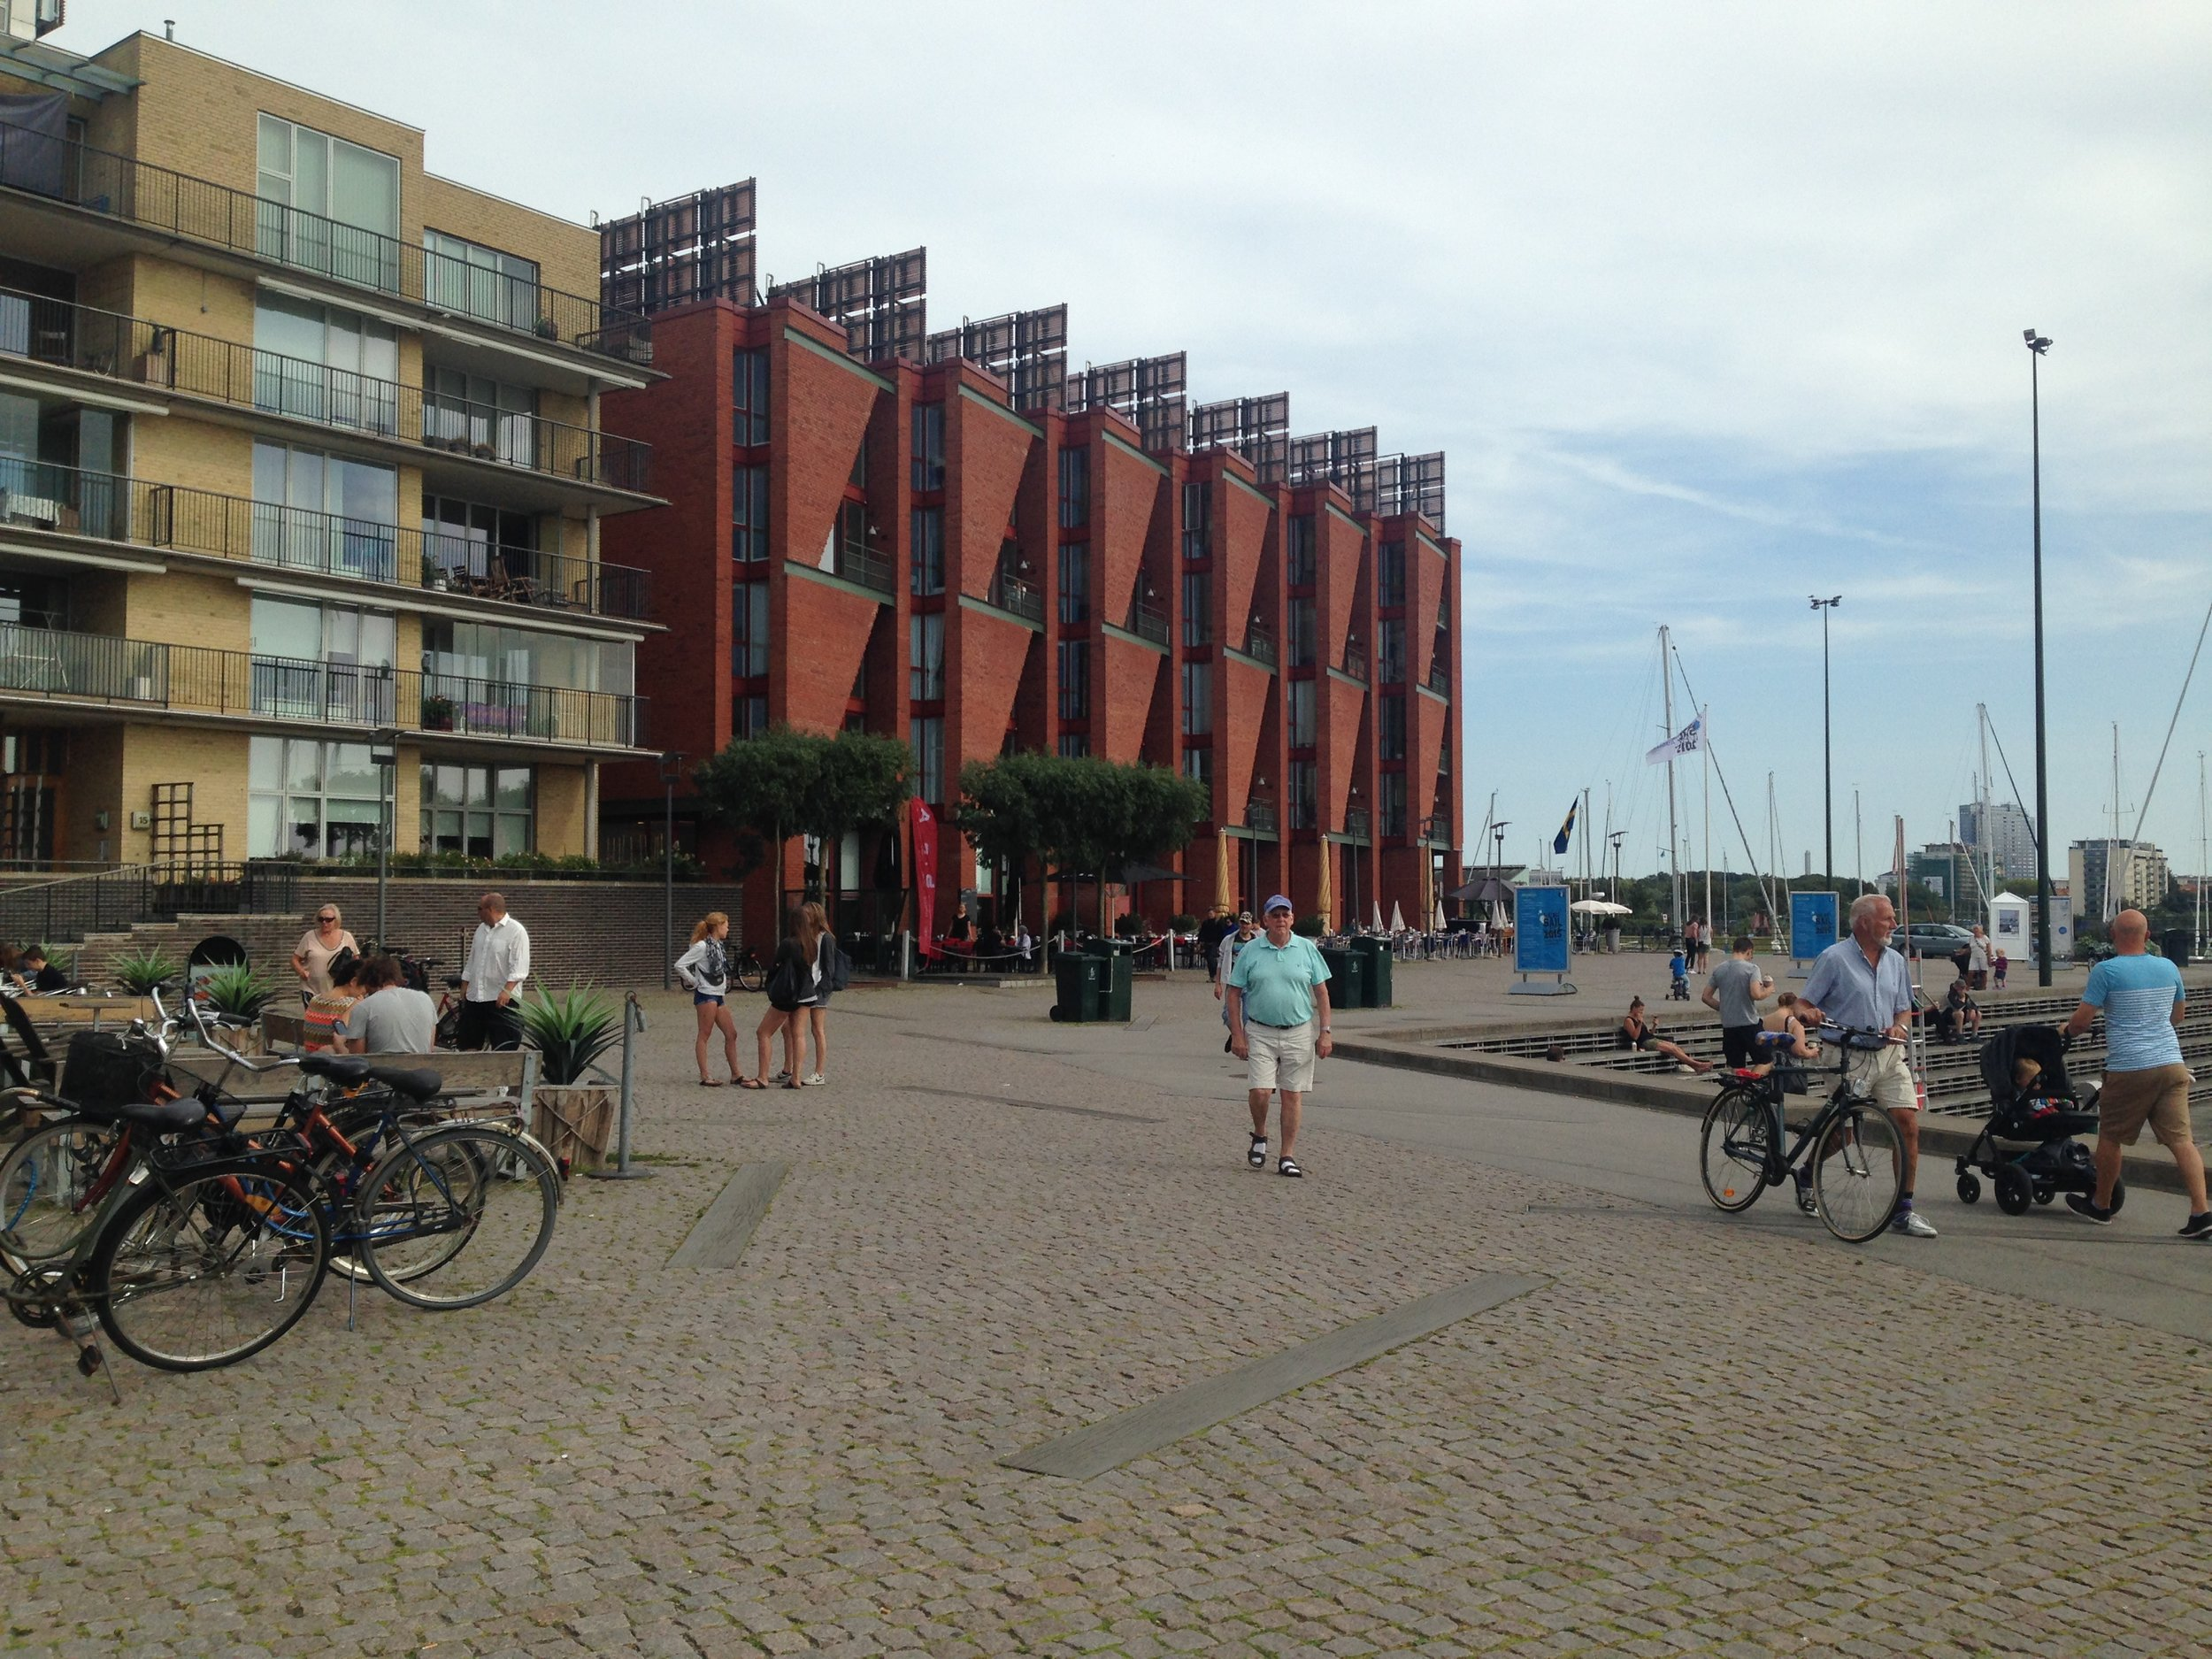 Vibrant pedestrian life in the seaside suburb of Malmo, Sweden.